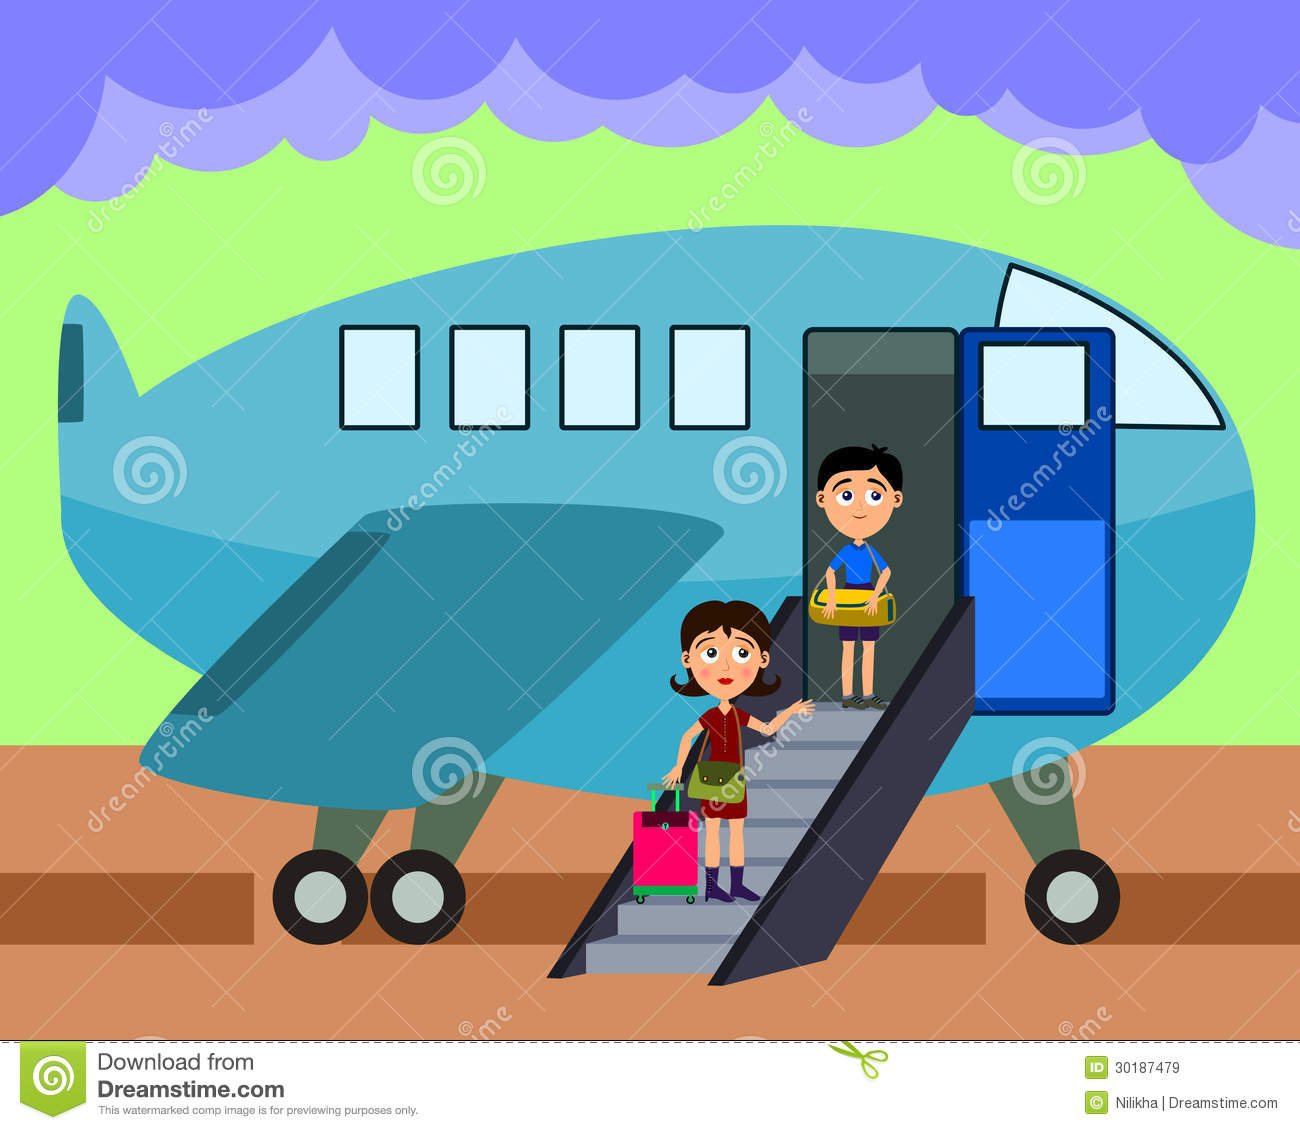 Cartoon Illustration Of A Mother And Son Boarding An Airplane